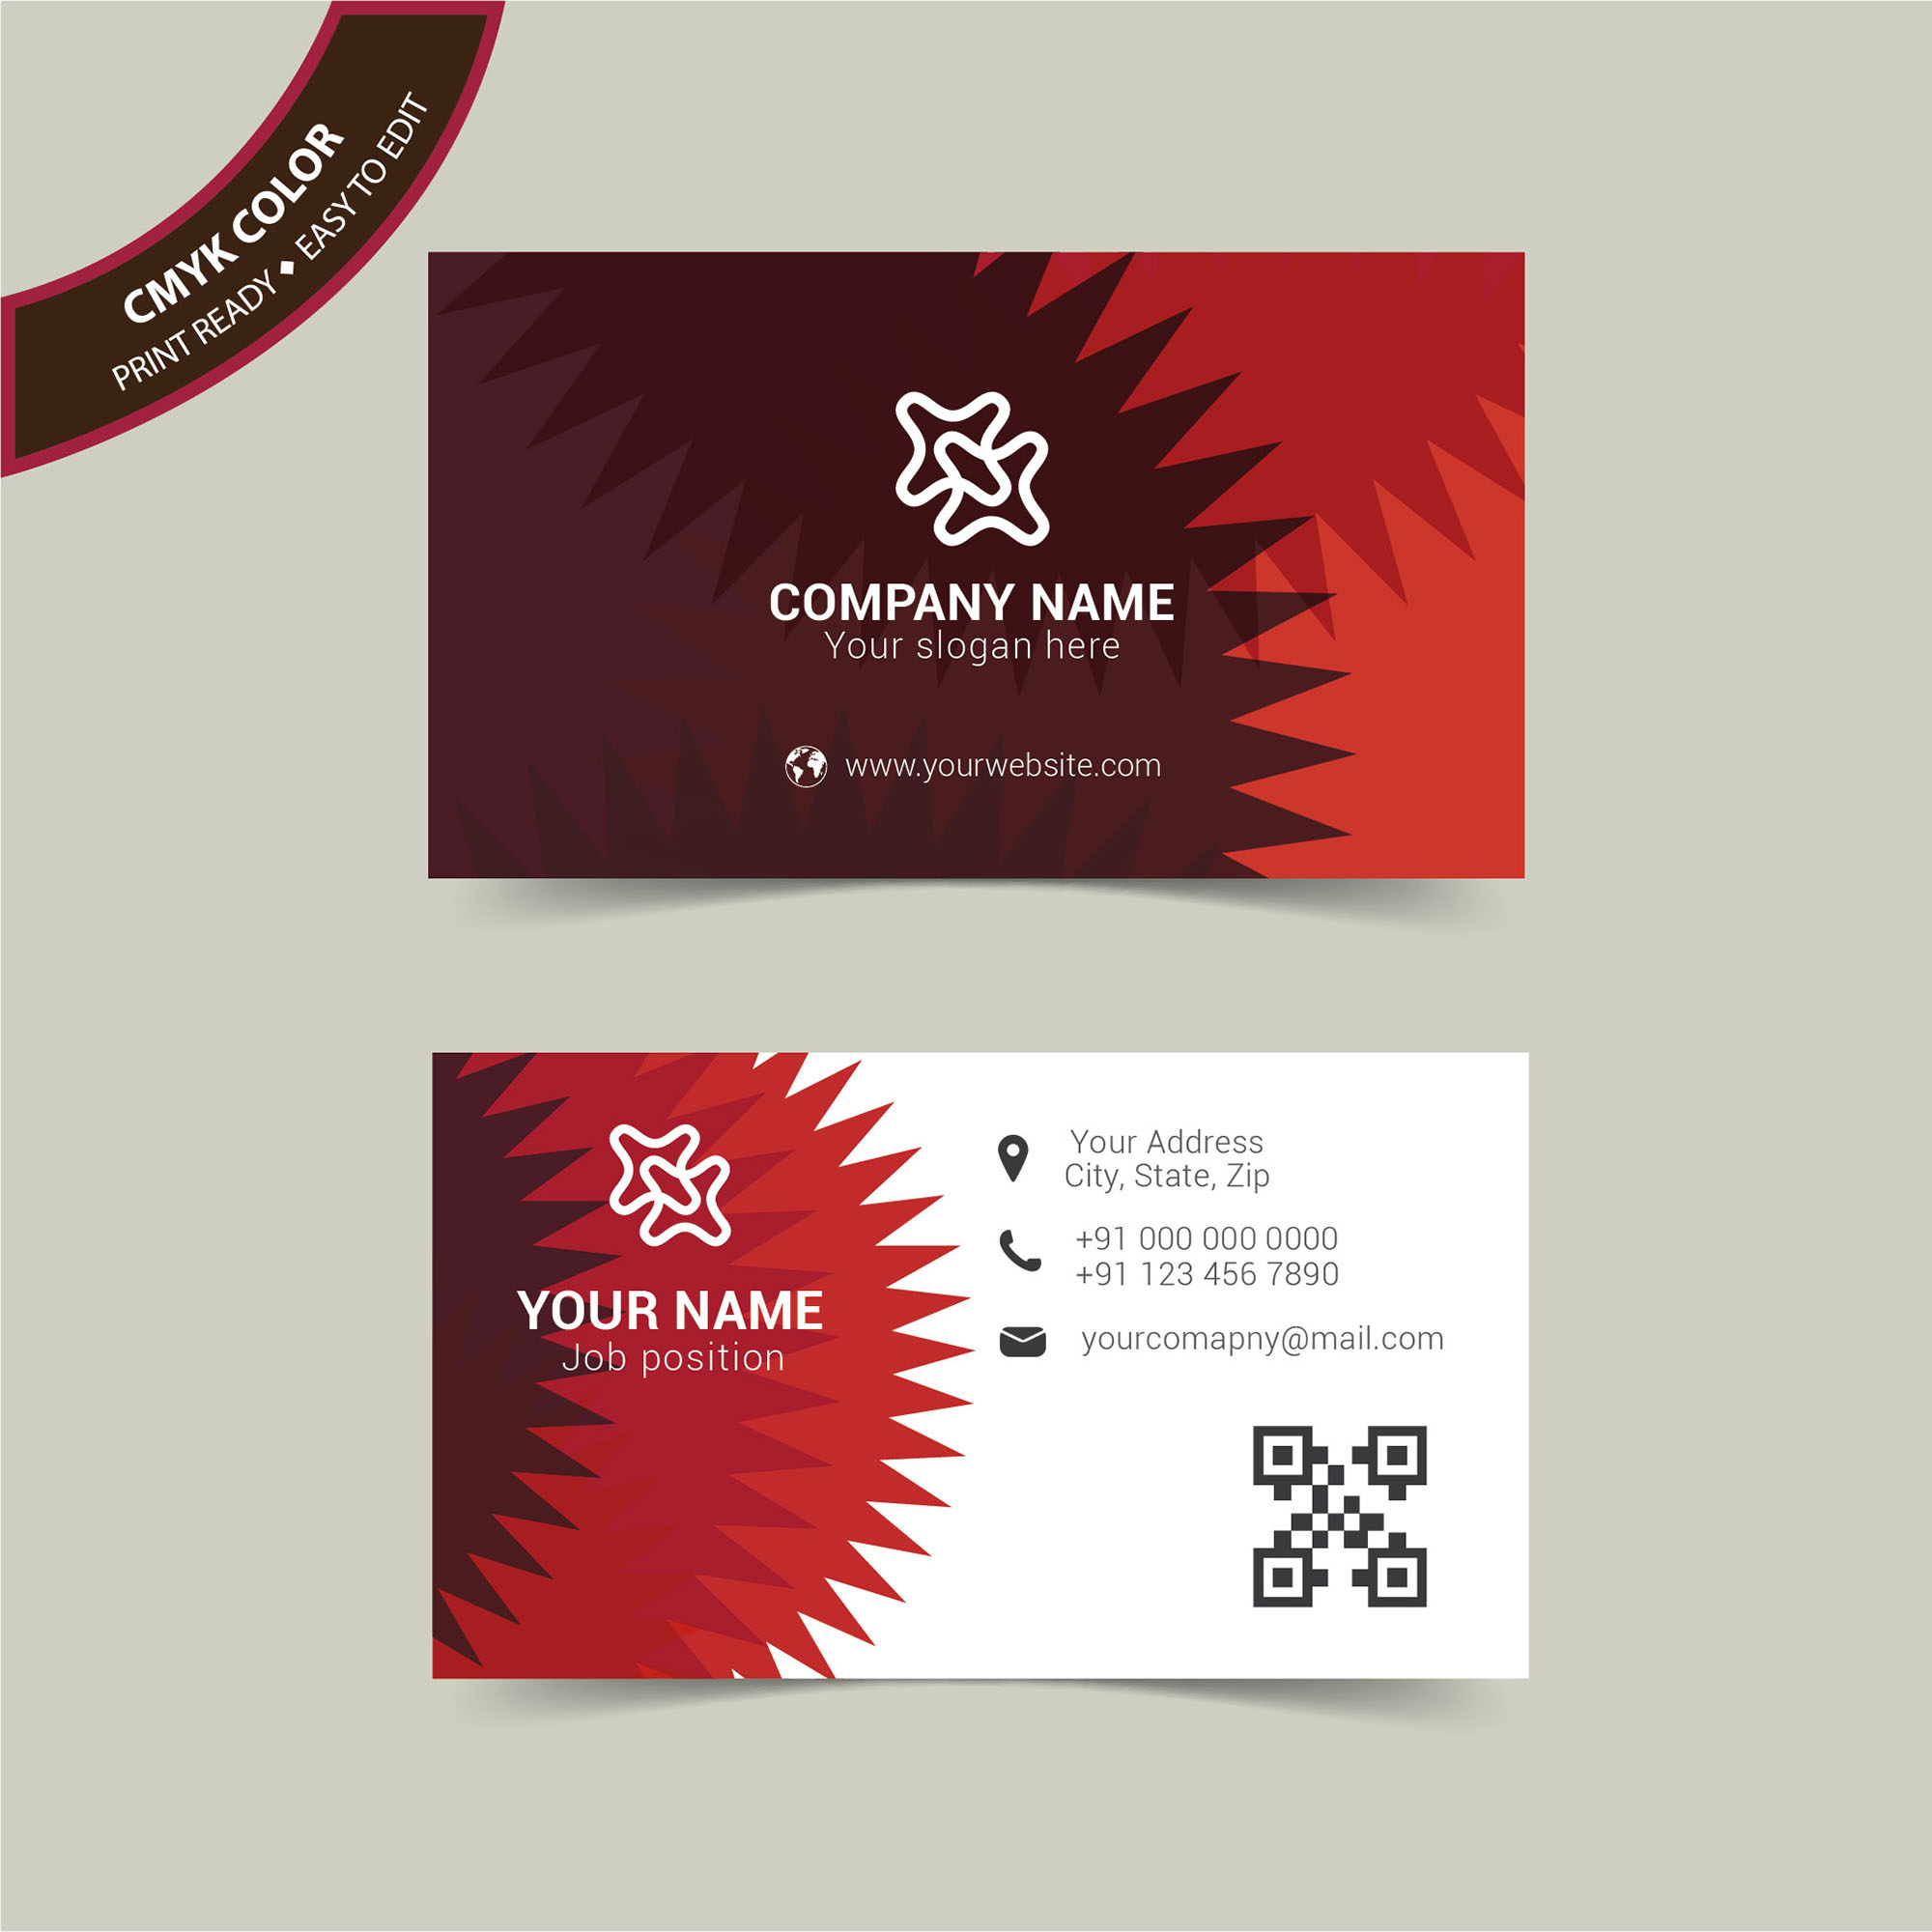 Abstract Professional Business Card Free Download Wisxicom - Business cards examples templates